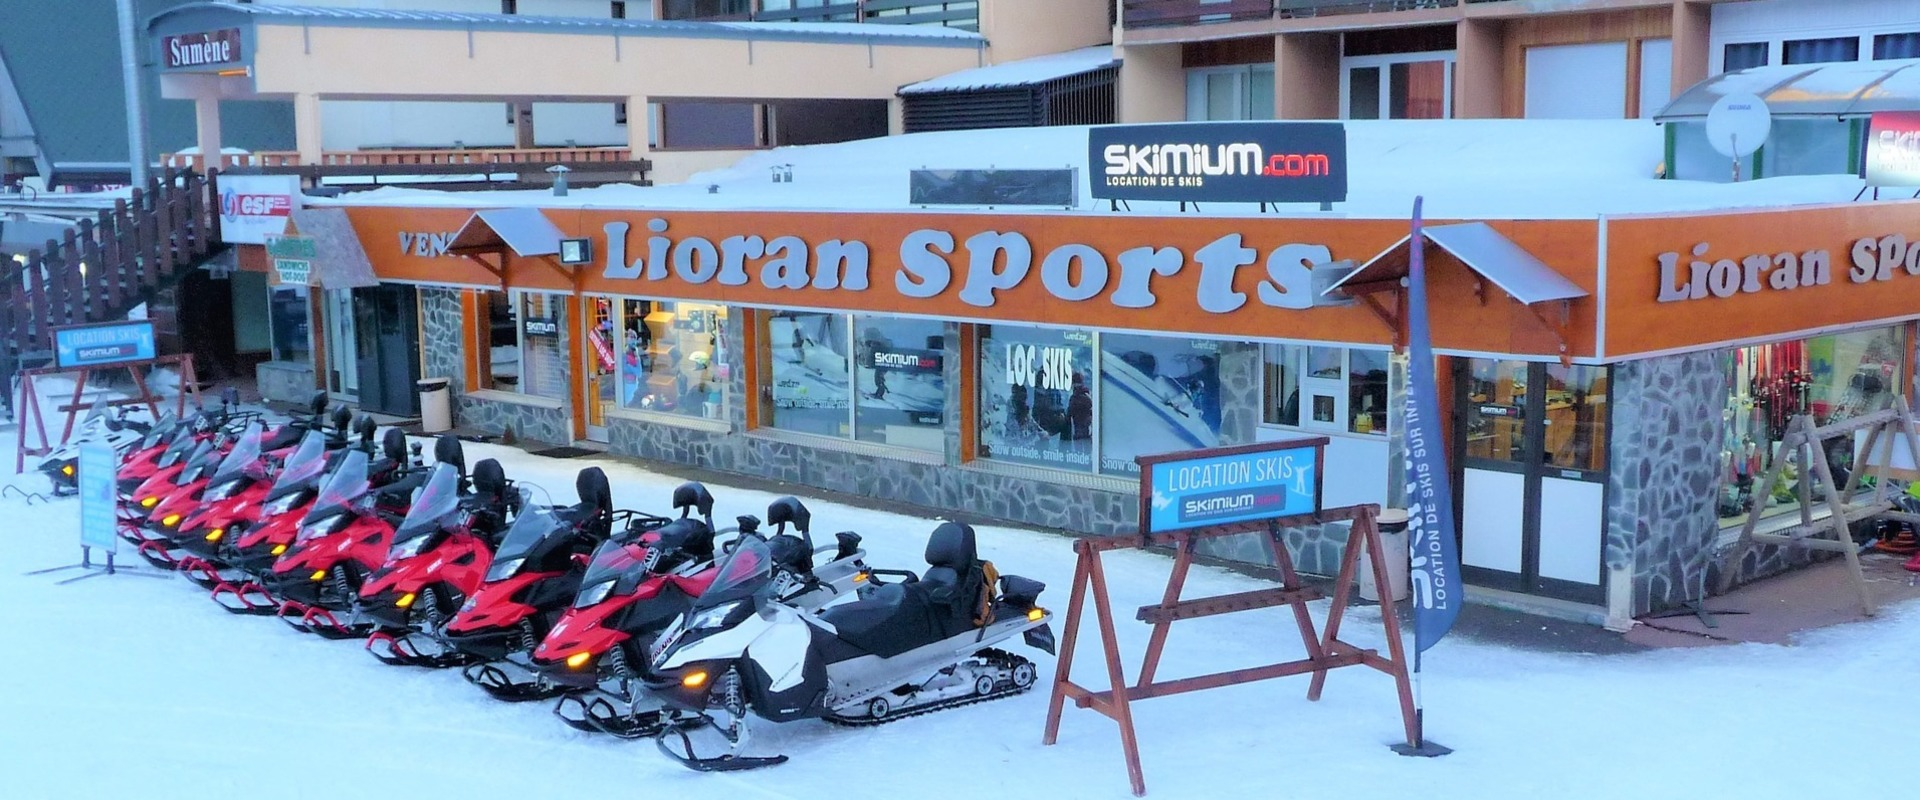 Location ski Lioran Sports location ski,surf,snowboard au super lioran 15300 le lioran